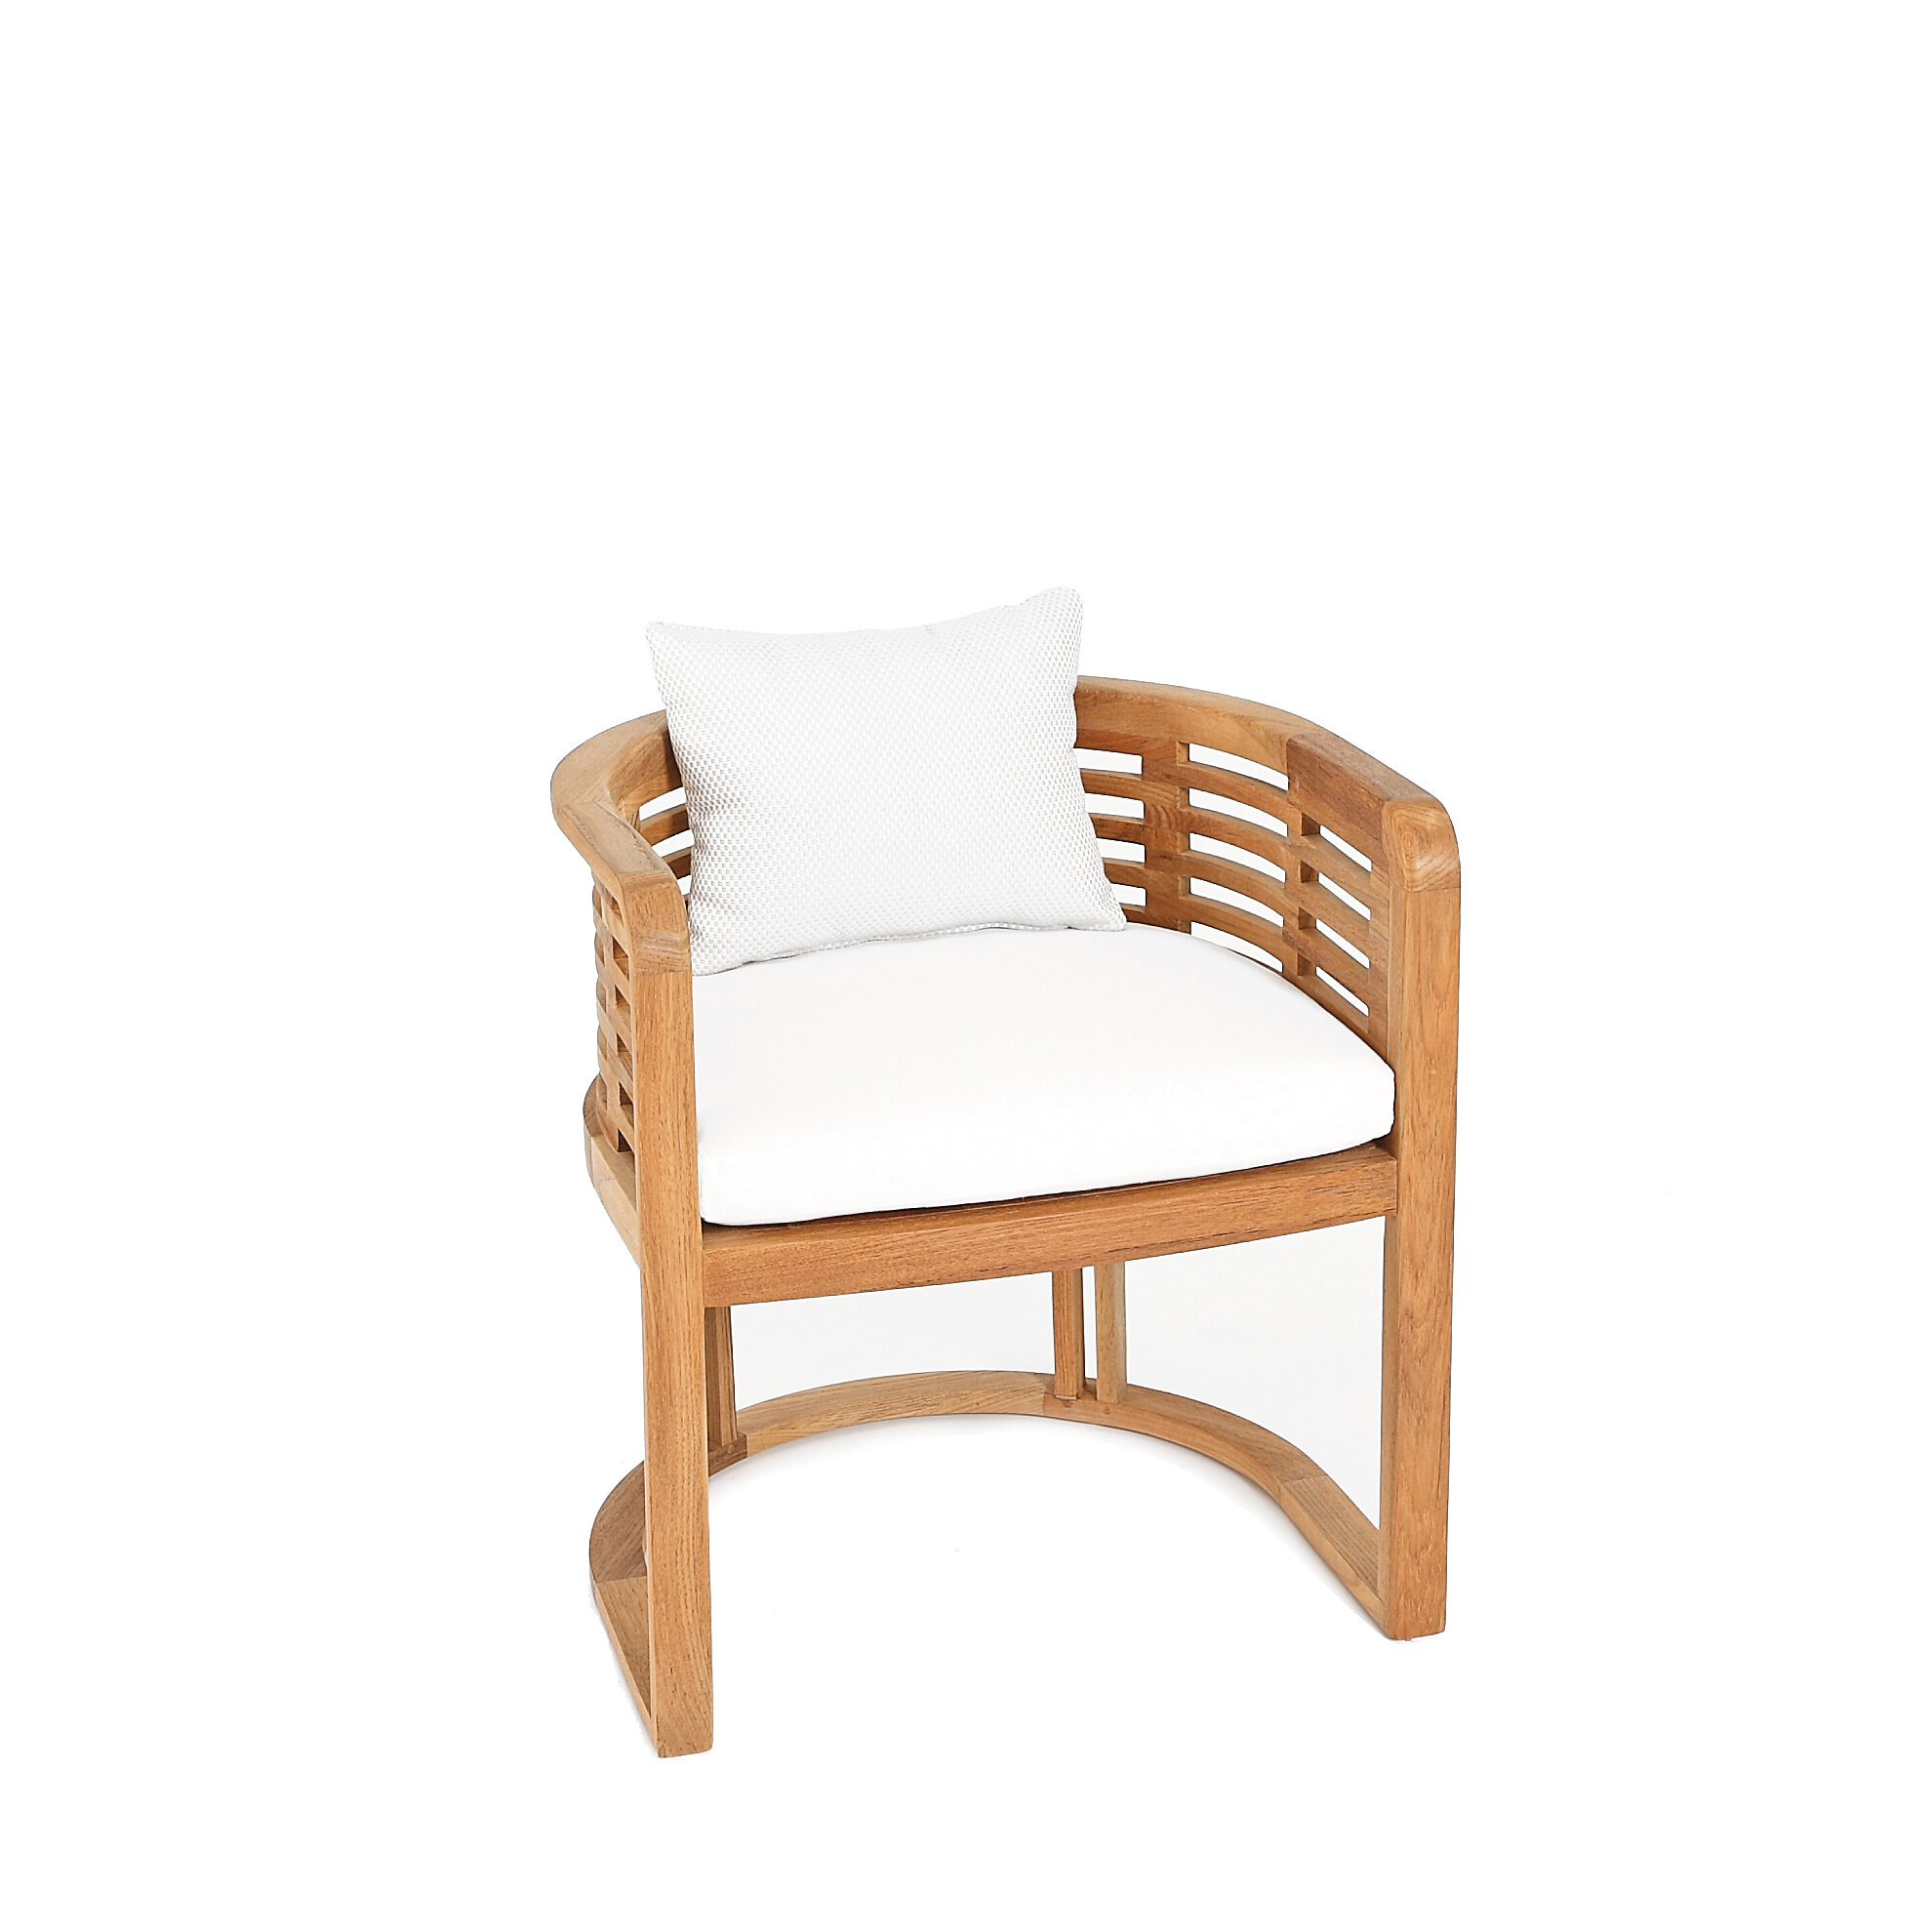 OASIQ Hamilton Teak Patio Dining Chair With Cushion | Wayfair